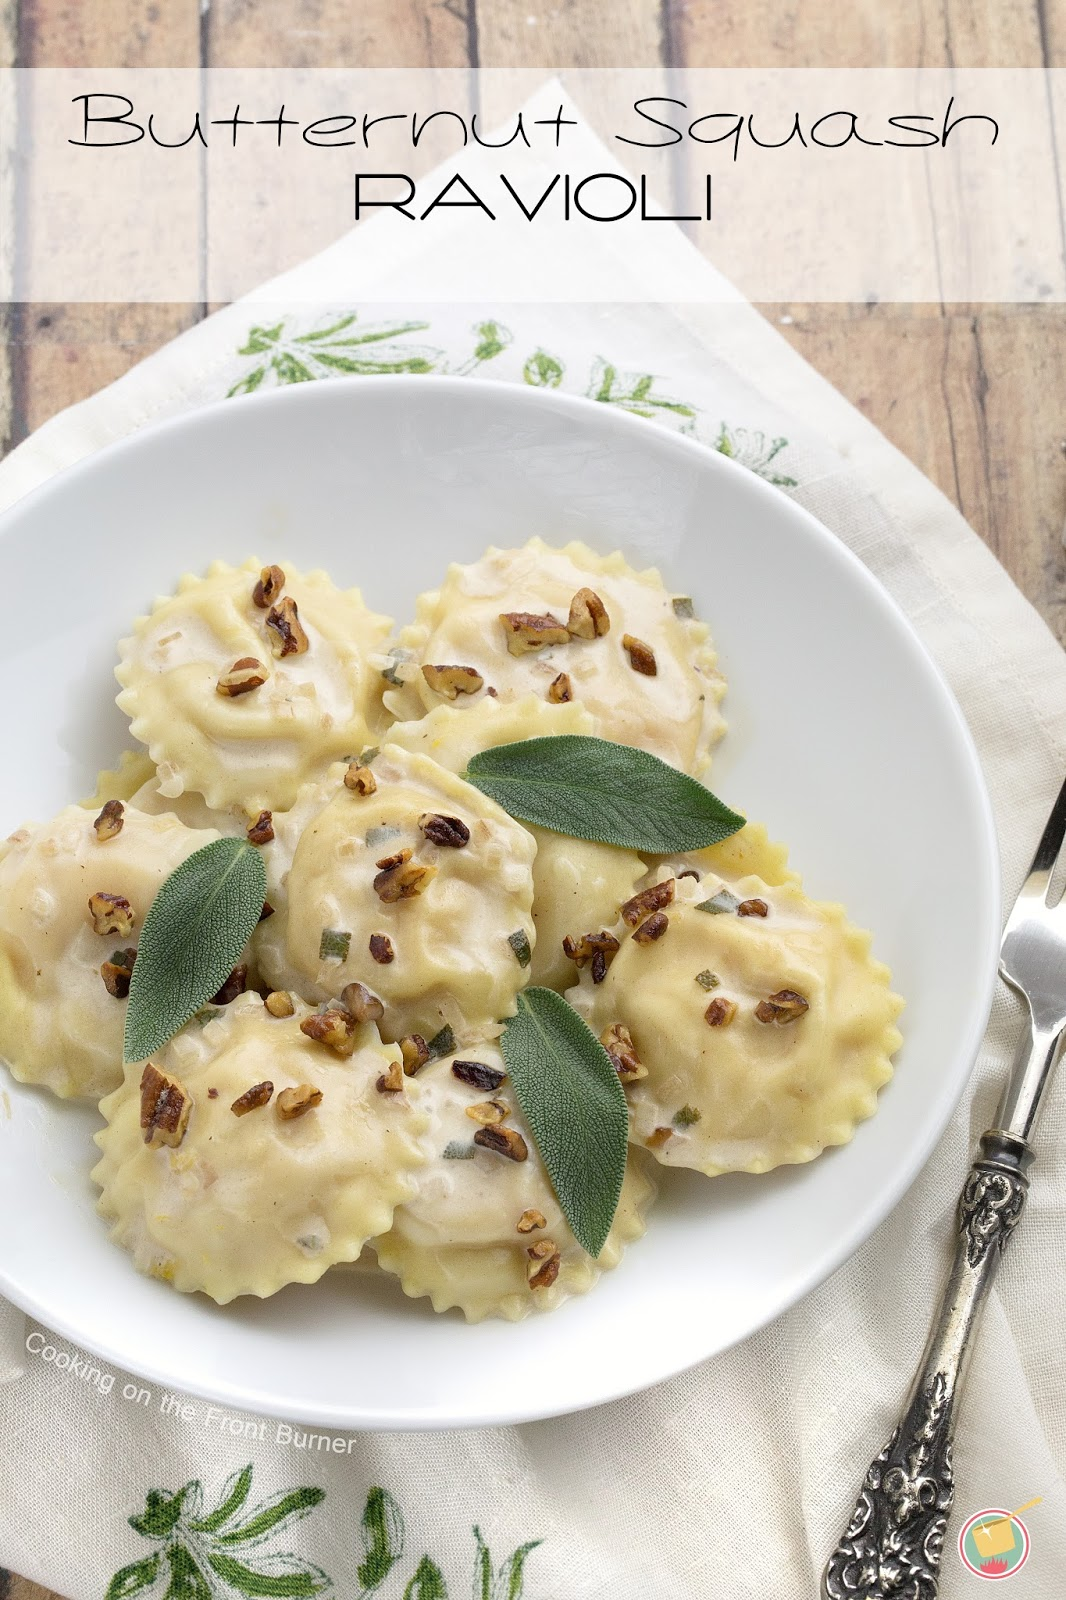 Butternut Squash Ravioli with a creamy sage sauce | Cooking on the Front Burner